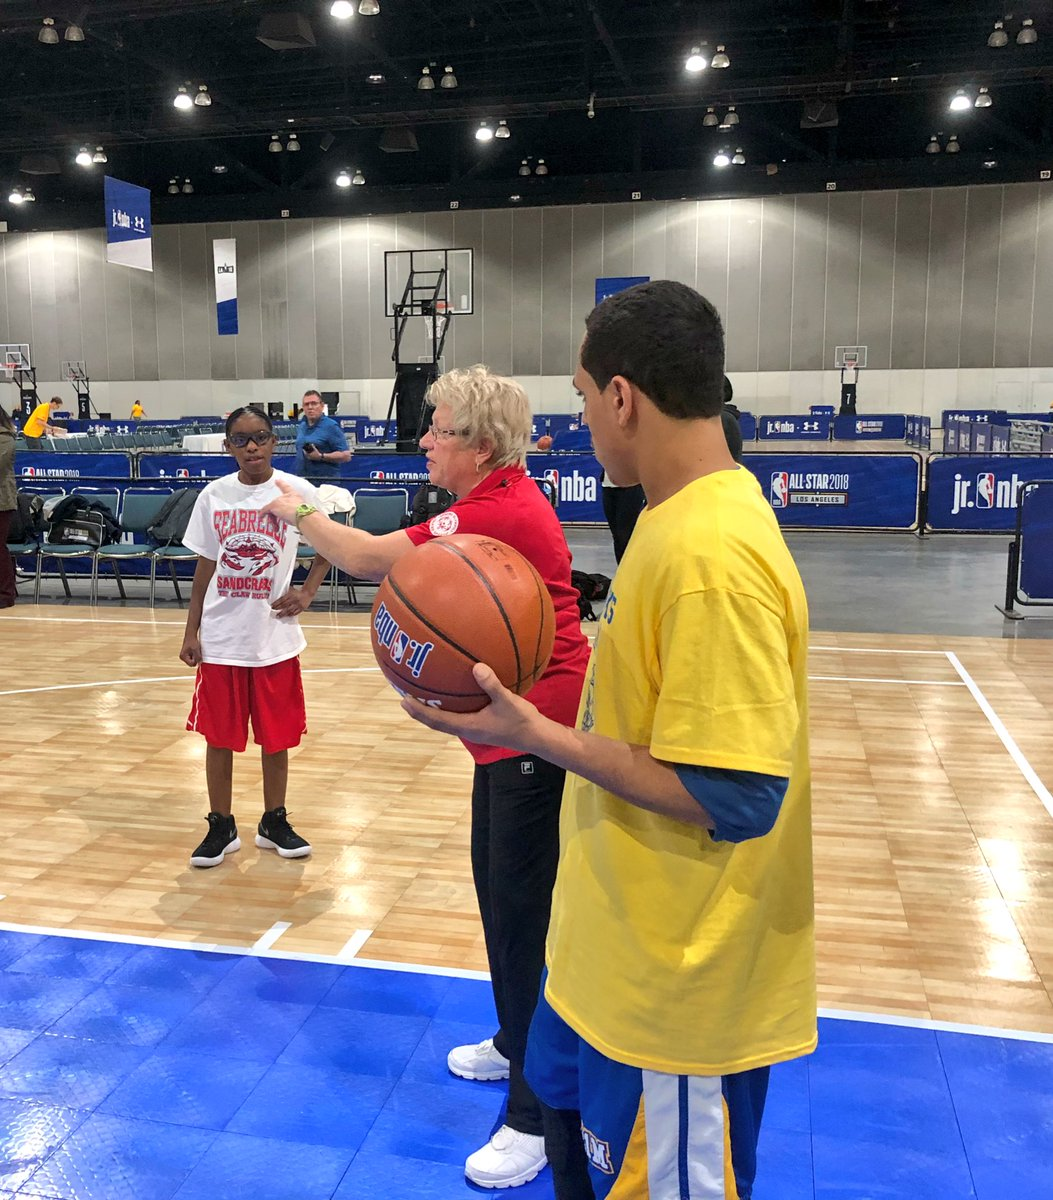 We are cheering for you tomorrow! RT @SpecialOlympics: Jasmine, @soflinfo, & Chris, @721M_CityHawks, starting on a new shooting drill. #NBAAllStar #PlayUnified https://t.co/KTkh6XXYbk